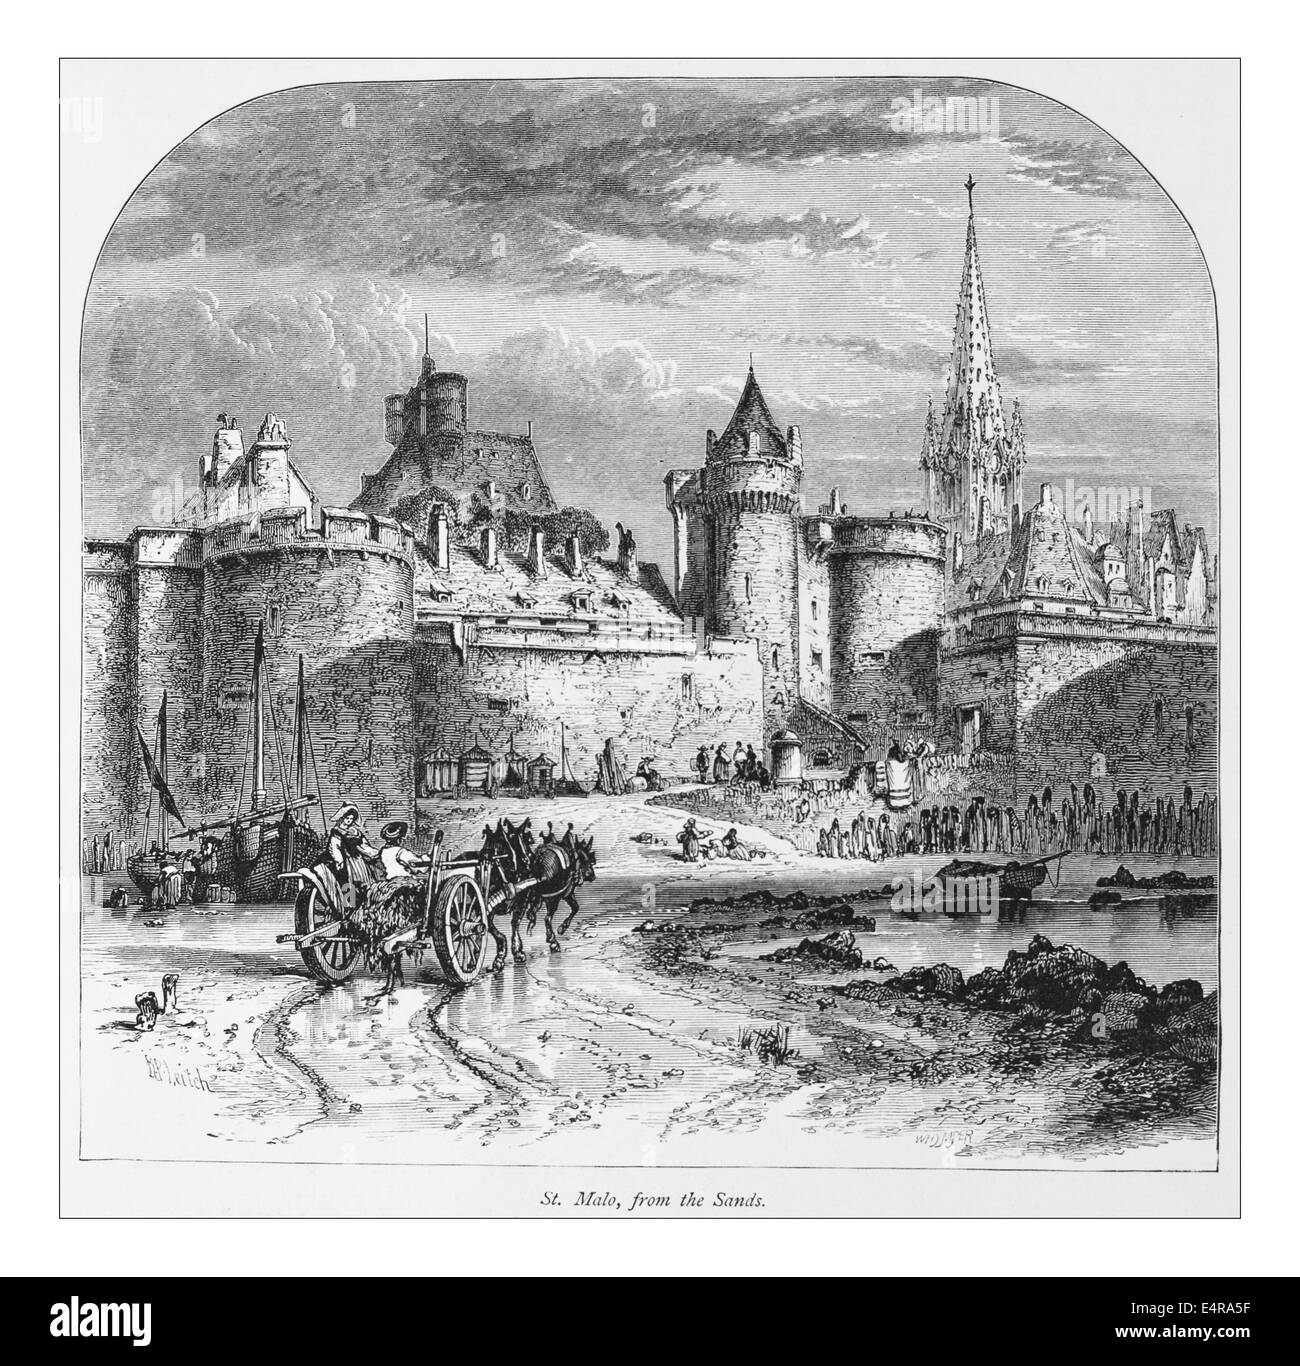 St. Malo from the Sands, France_ Illustration from 'The British isles - Cassell Petter & Galpin Part 8 Picturesque - Stock Image